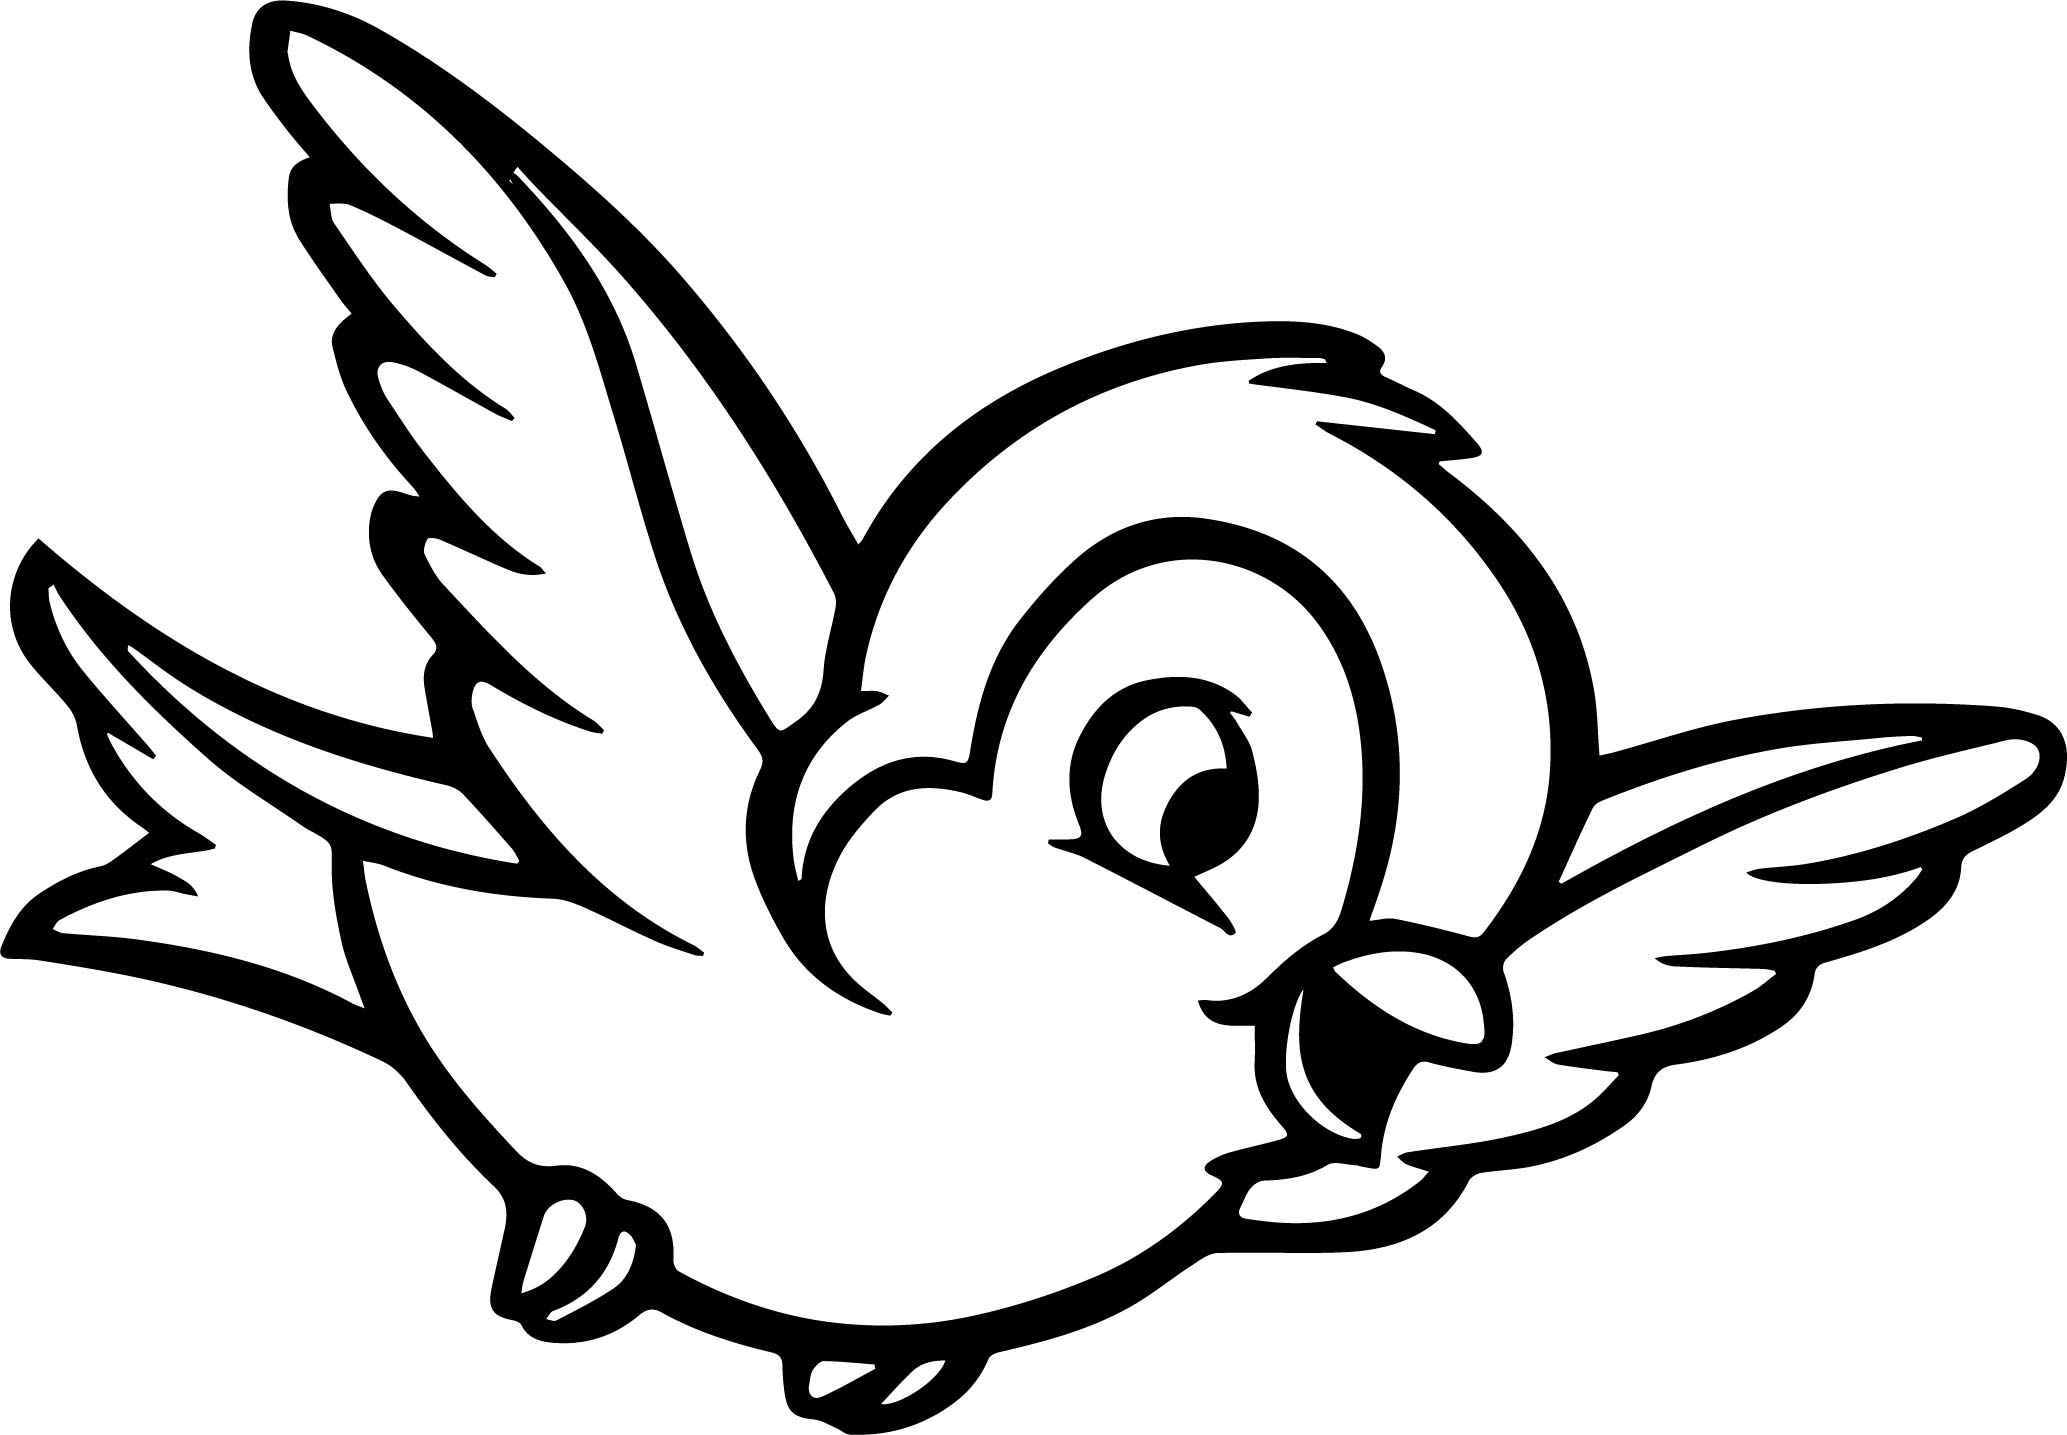 bird coloring images birds free to color for children birds kids coloring pages coloring bird images